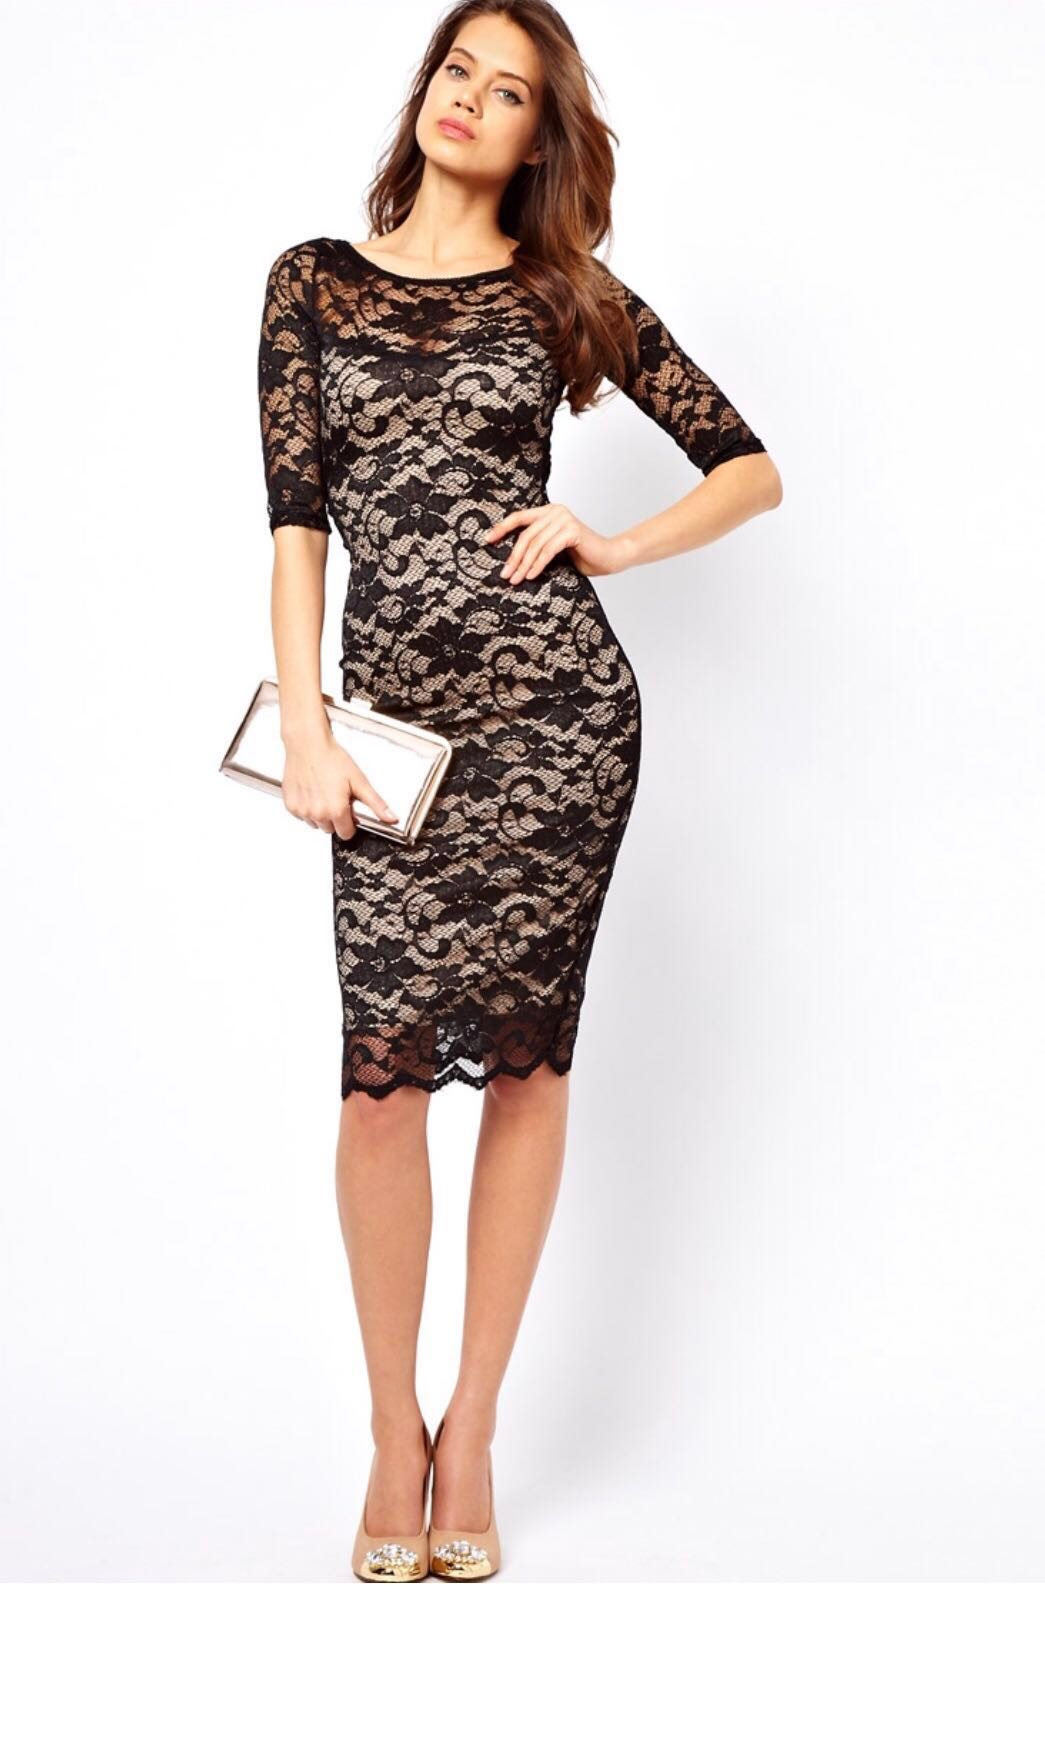 a08301db0bf5 Elise Ryan Open Back Midi Dress in Lace, Women's Fashion, Clothes ...